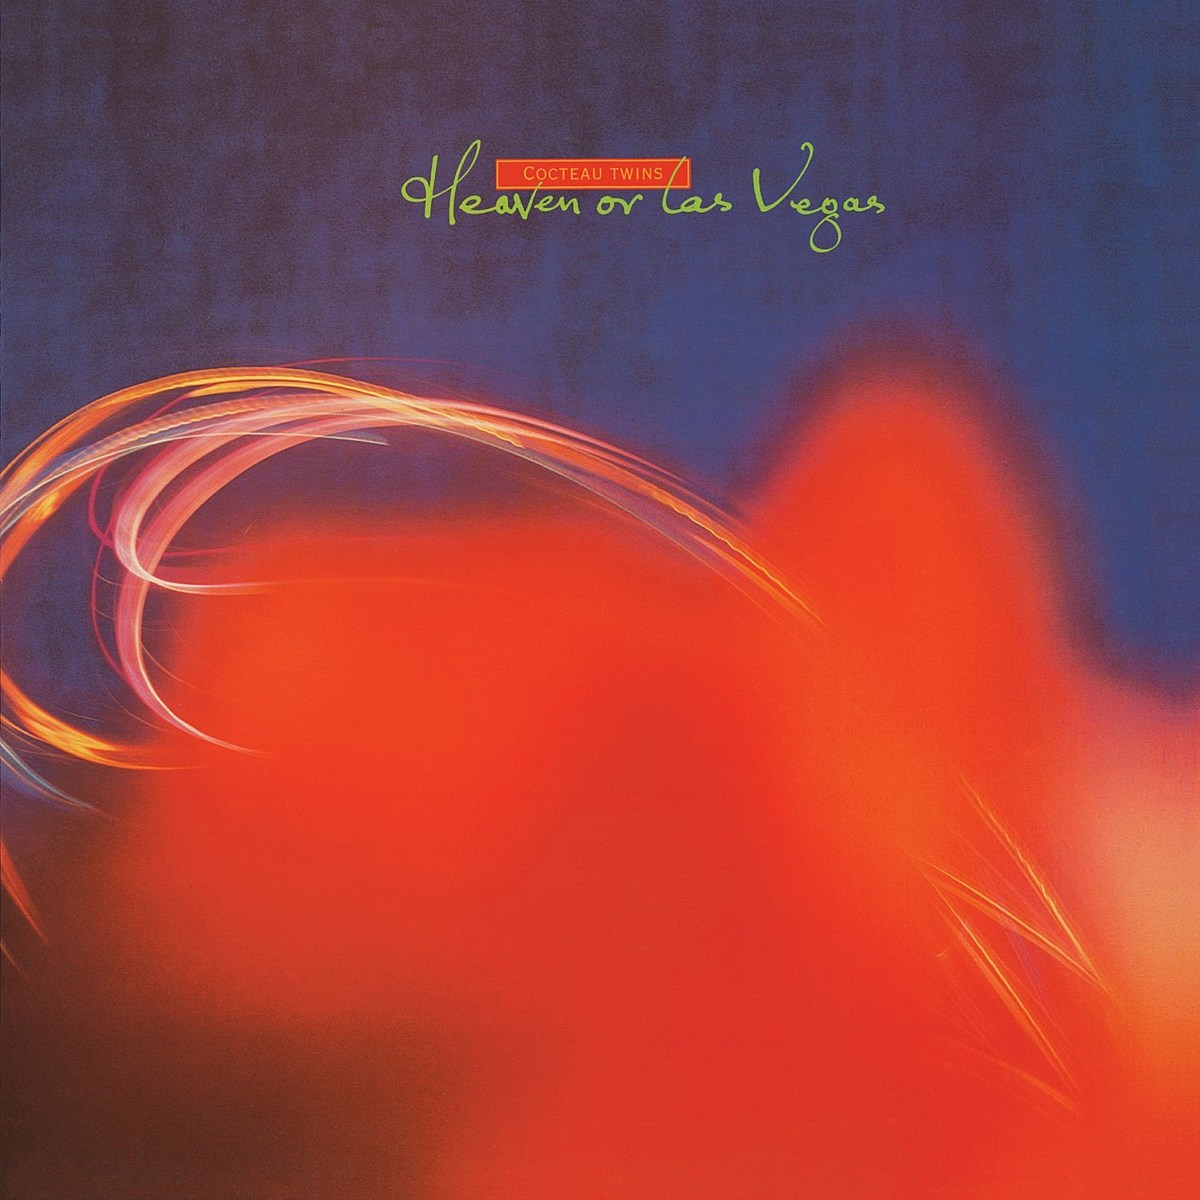 Cocteau Twins' Simon Raymonde on 'Heaven or Las Vegas' (which just turned 30)